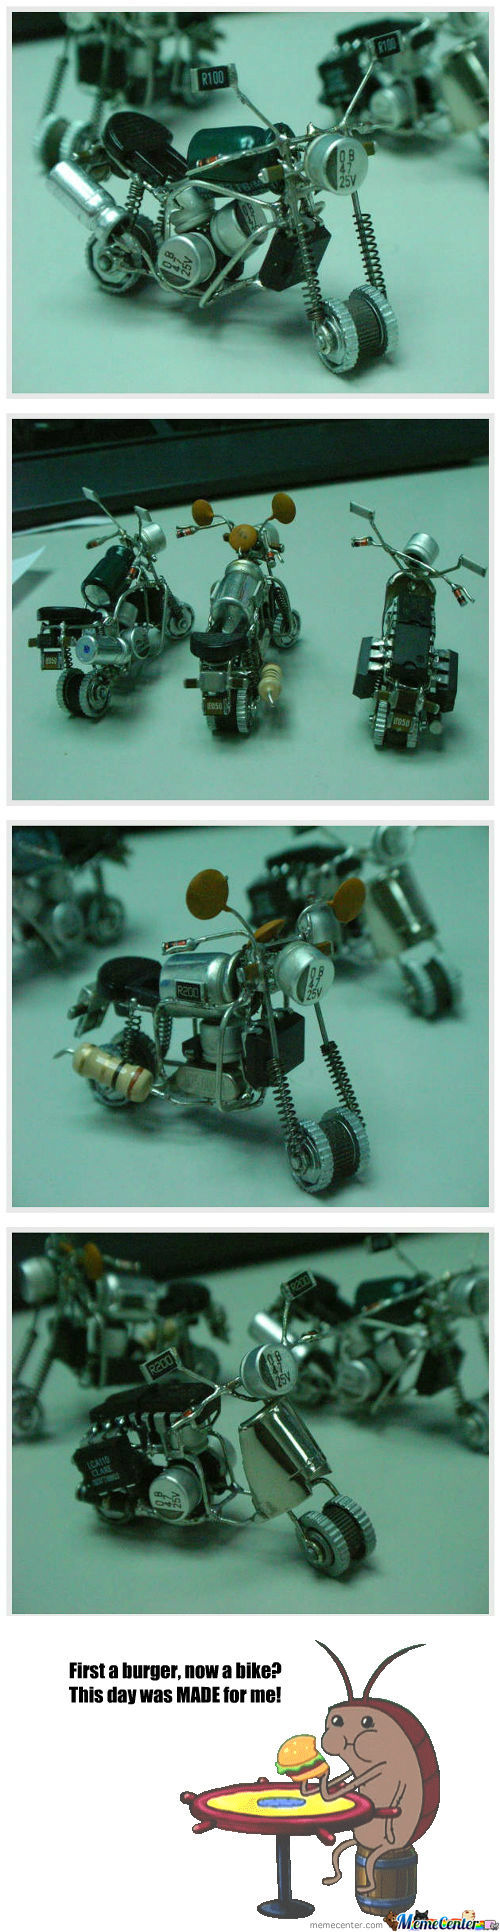 [RMX] Awesome Mini Motorbike